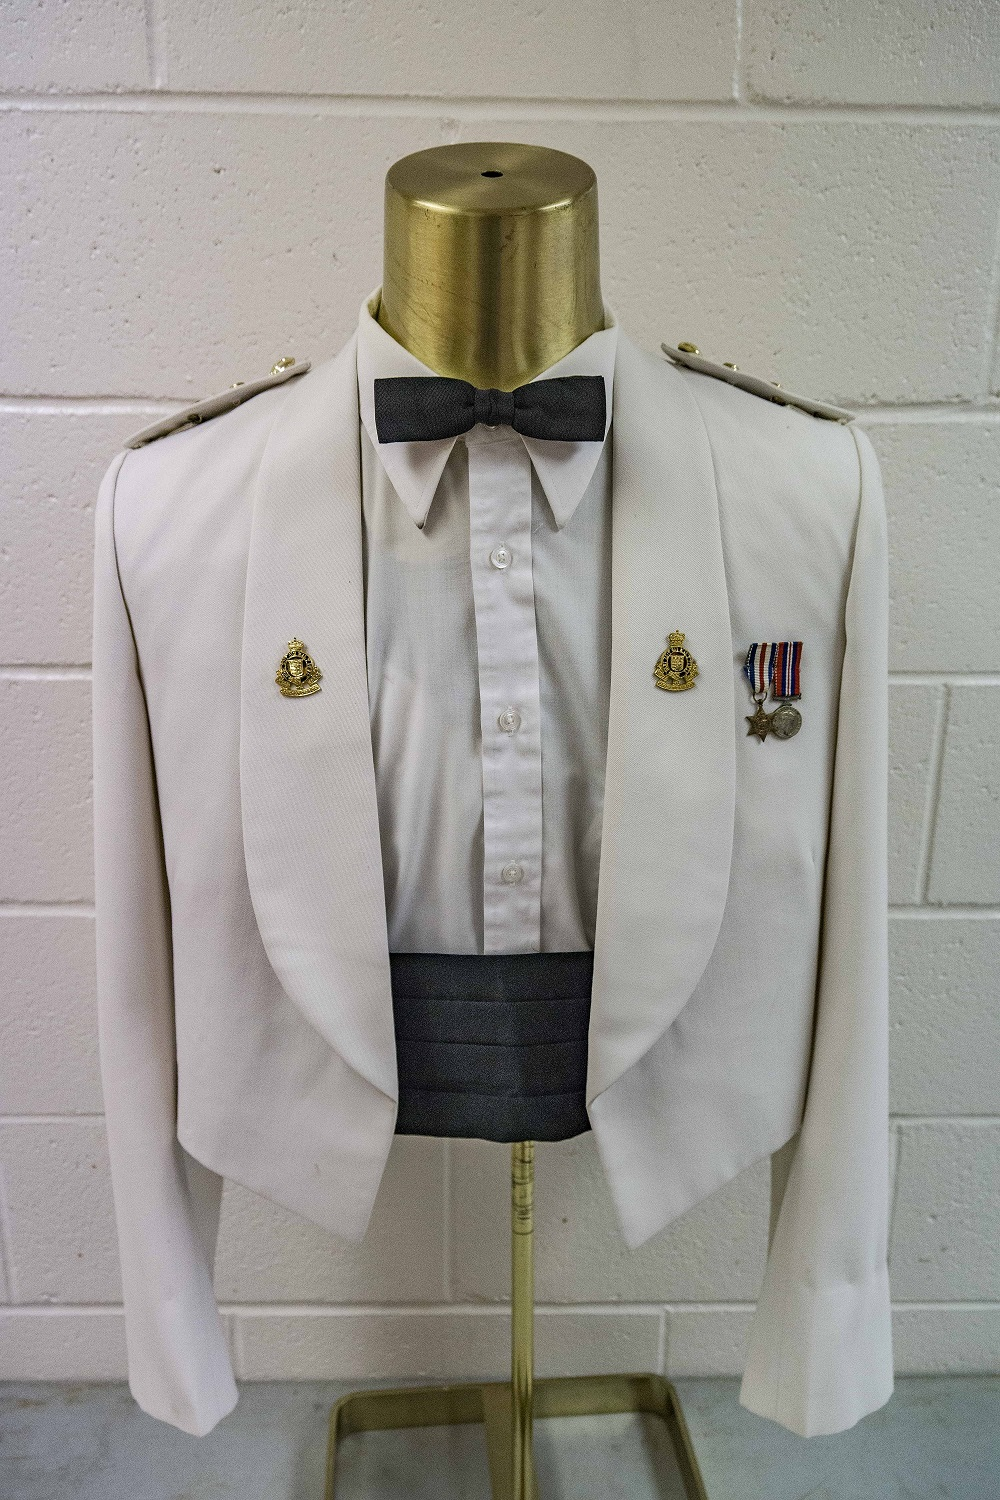 Cf army mess dress medal placement